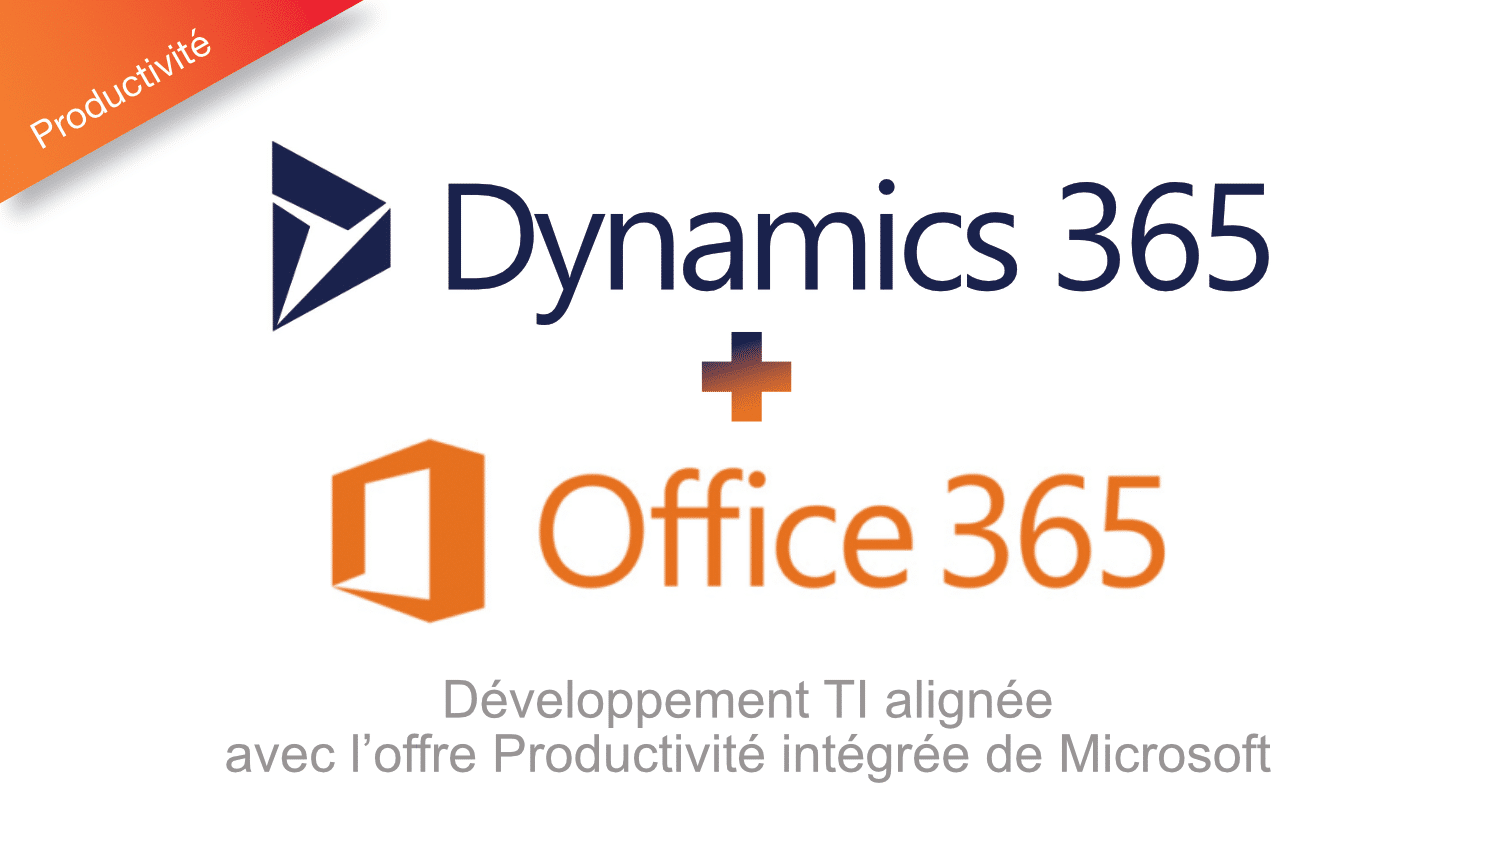 dynamics 365 + office 365